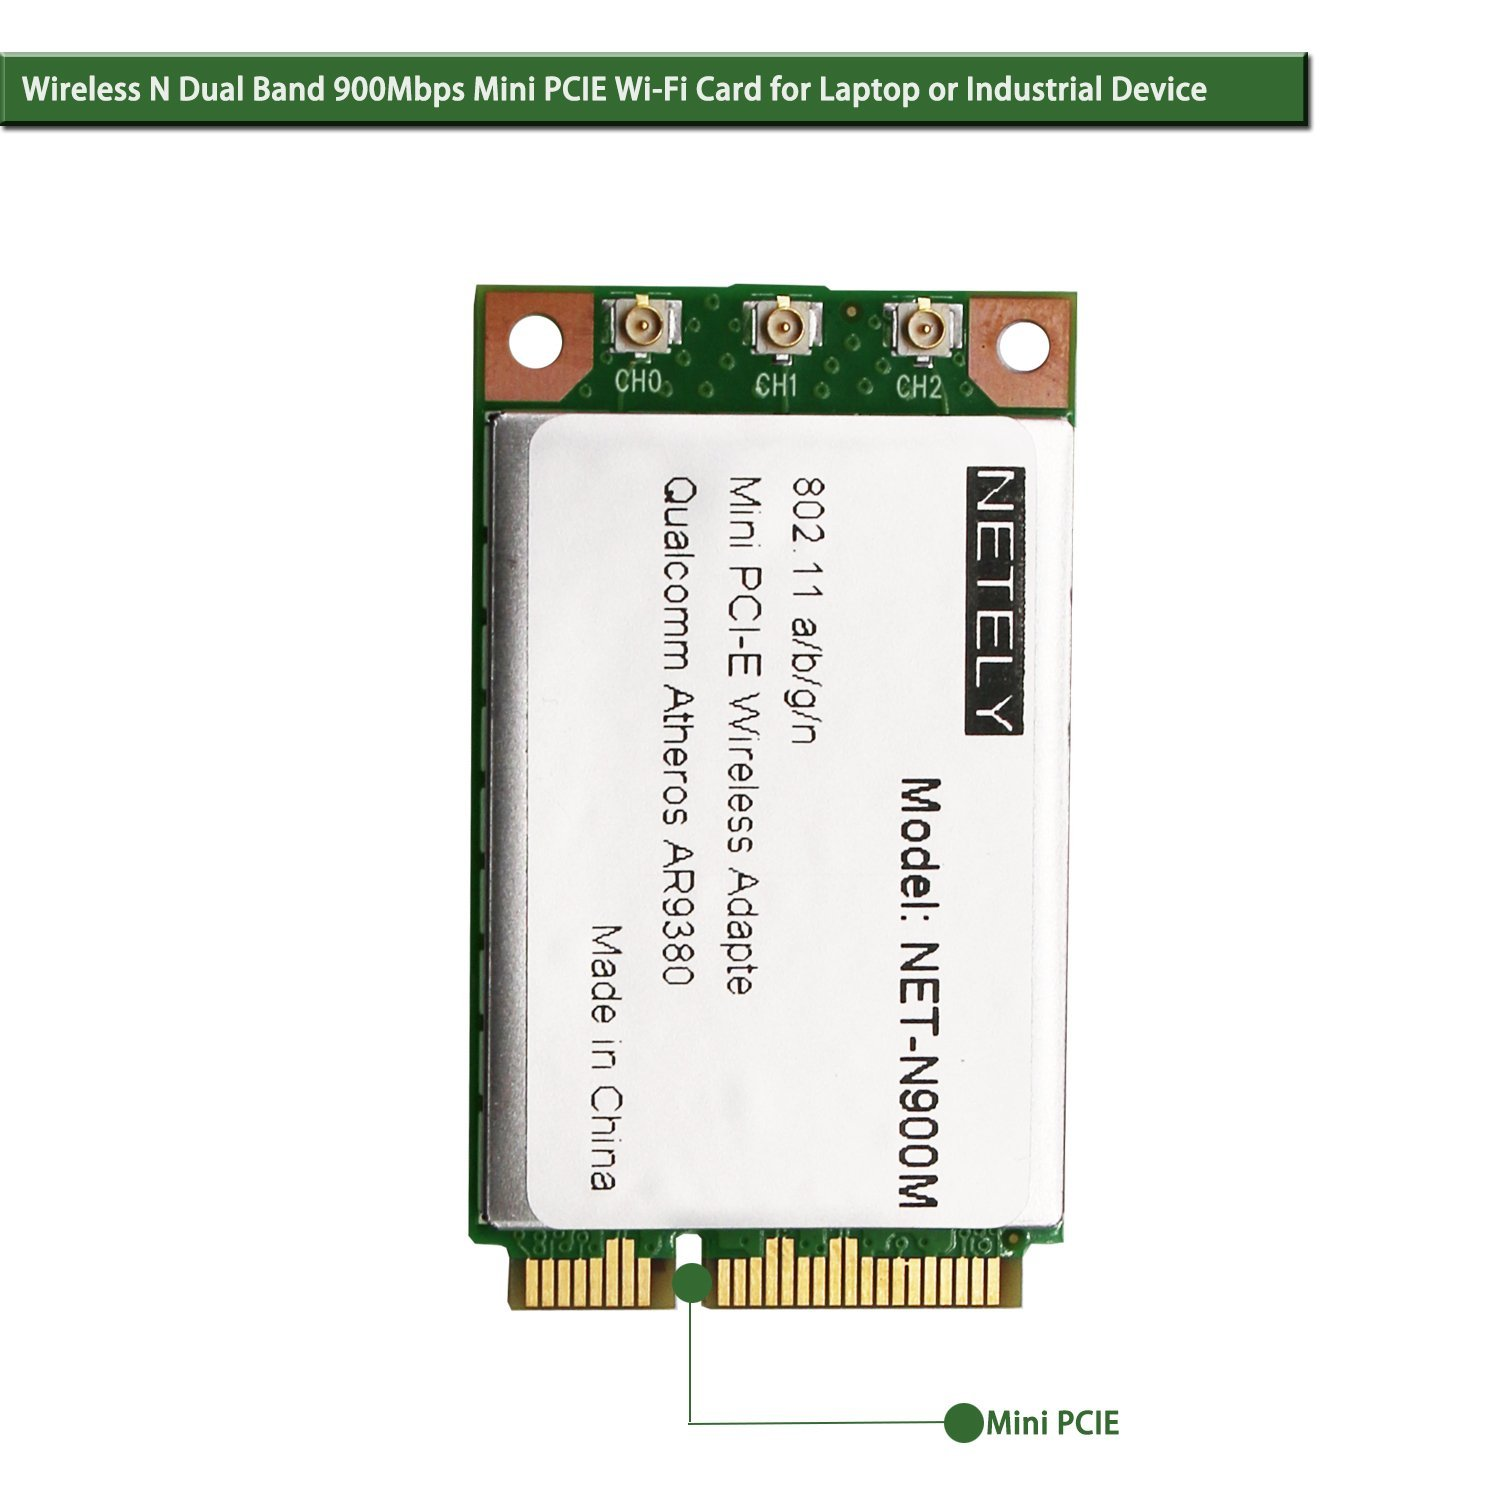 Mini PCIe NETELY Wireless N 900Mbps (2.4GHz 450Mbps and 5GHz